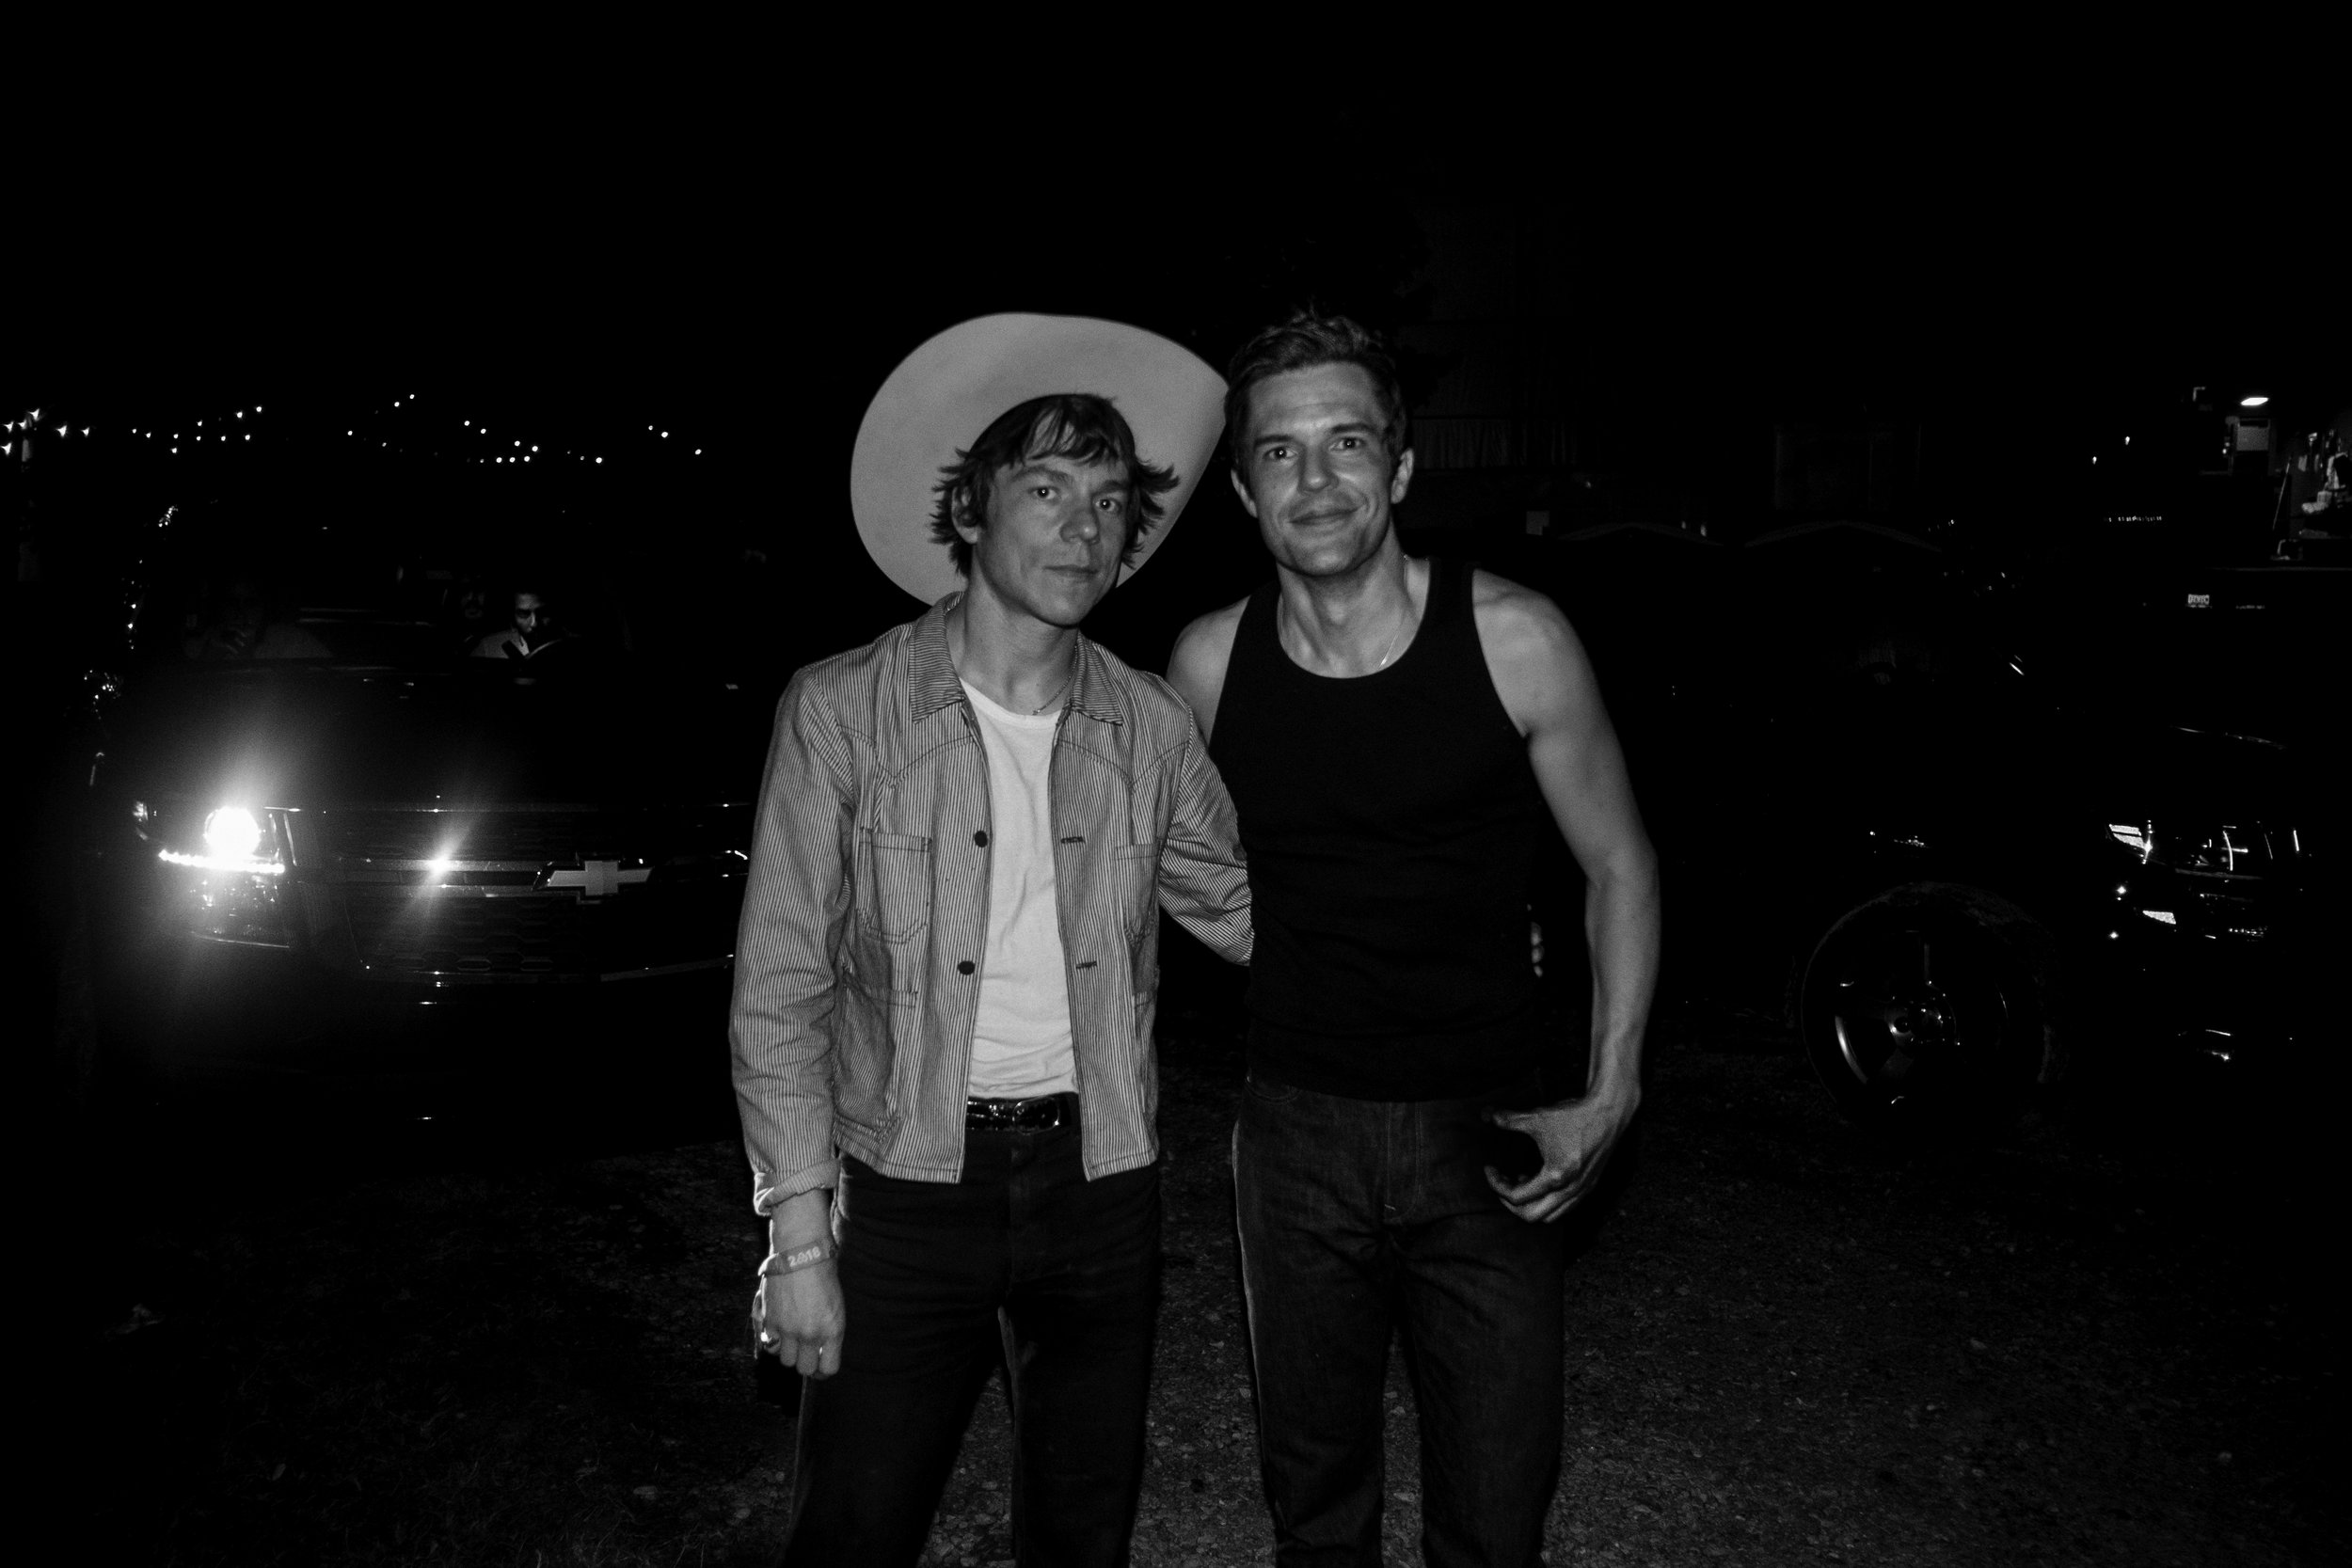 Matt Shultz of Cage the Elephant with Brandon Flowers of The Killers.